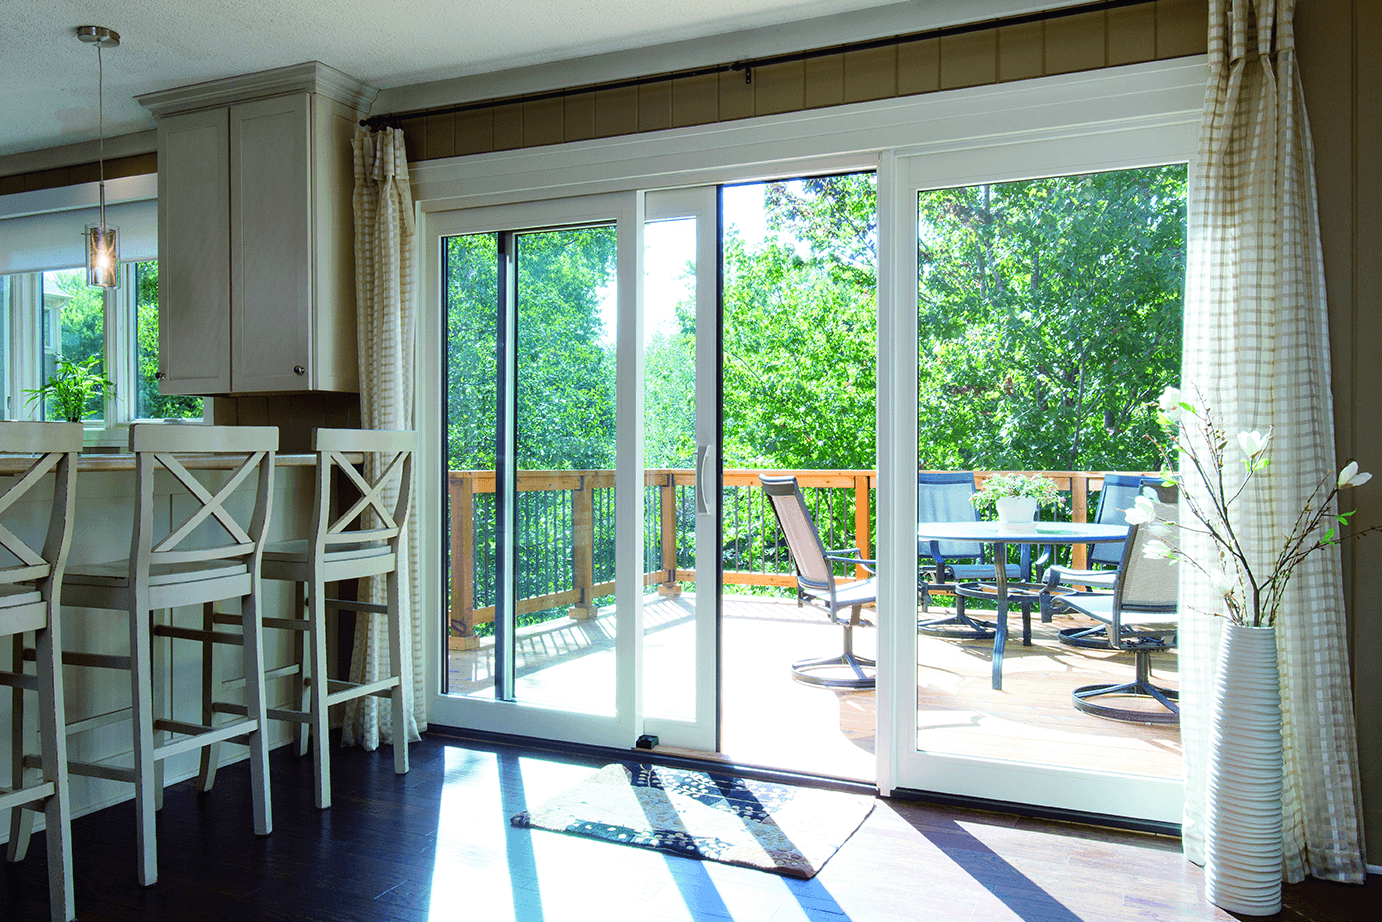 4 Reasons to Open Your Windows and Let in the Fresh Spring Air